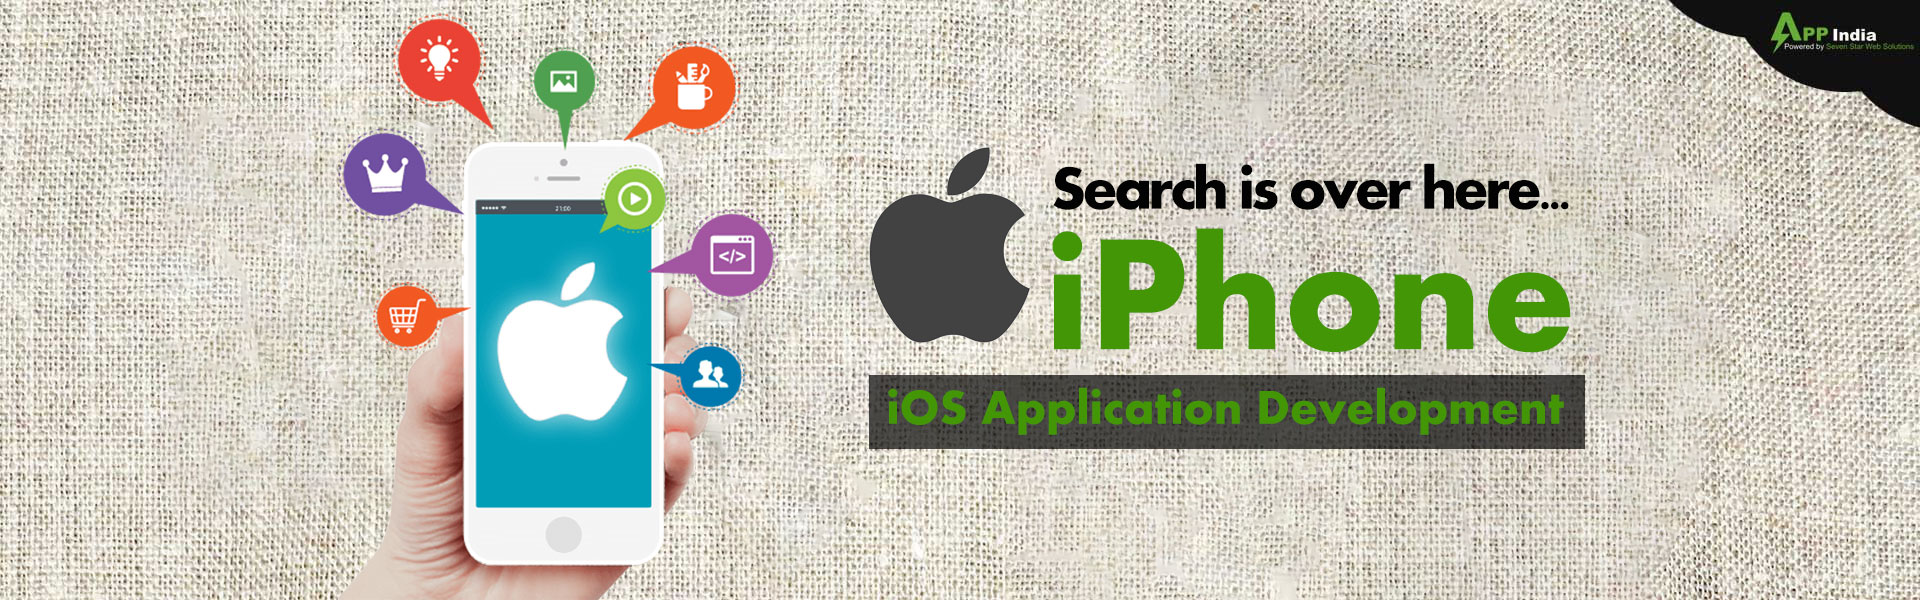 iOS Application Development Services Company